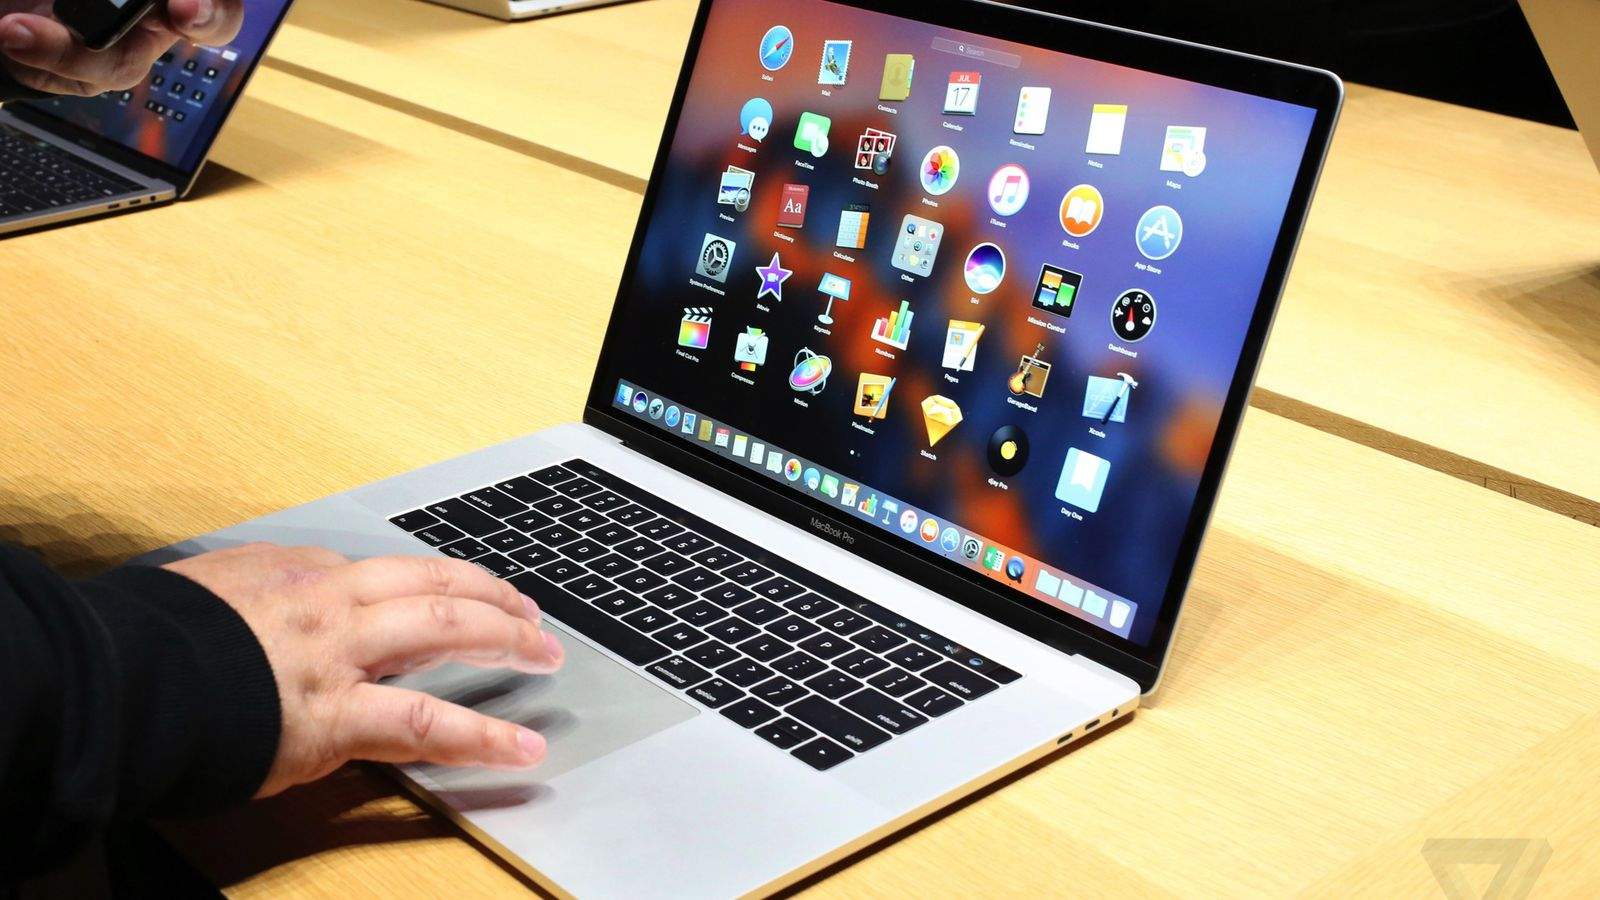 The new MacBook Pro looks and feels so good it's unreal